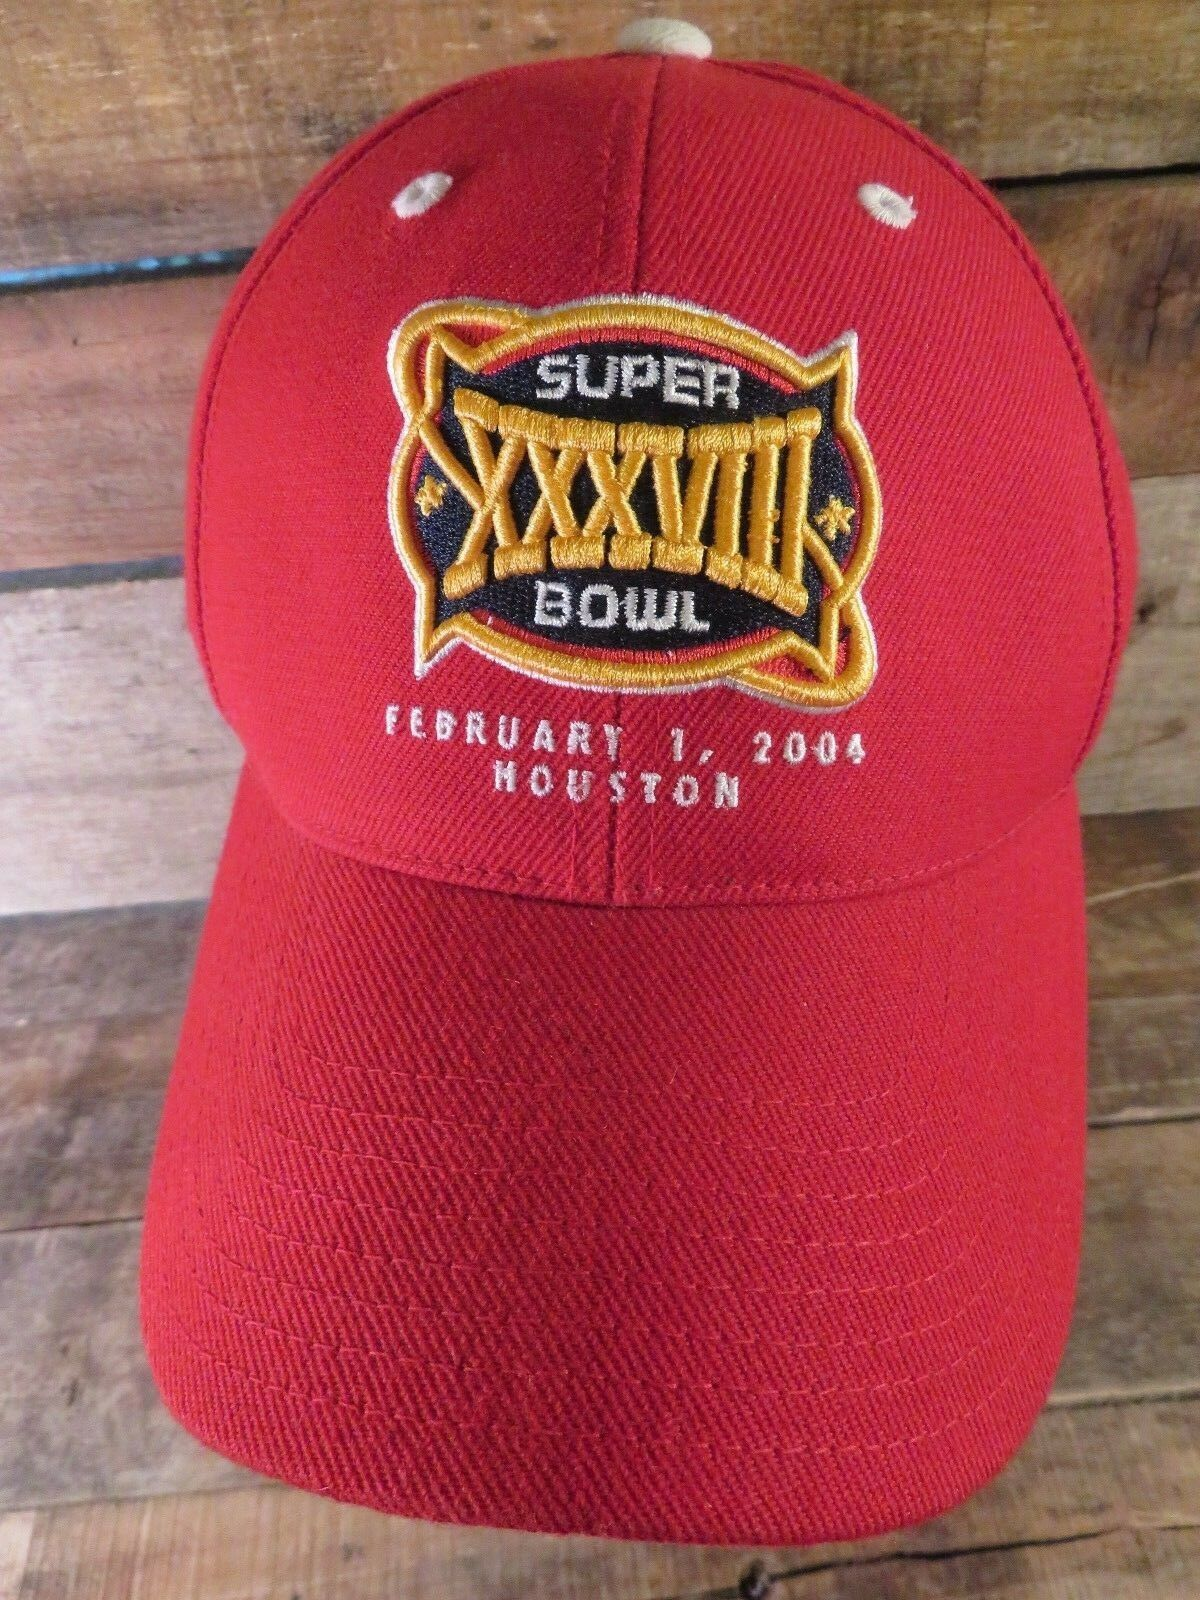 Super Bowl XXXVIII Reebok Houston 2004 Reebok XXXVIII Adjustable Adult Cap Hat f31ec1